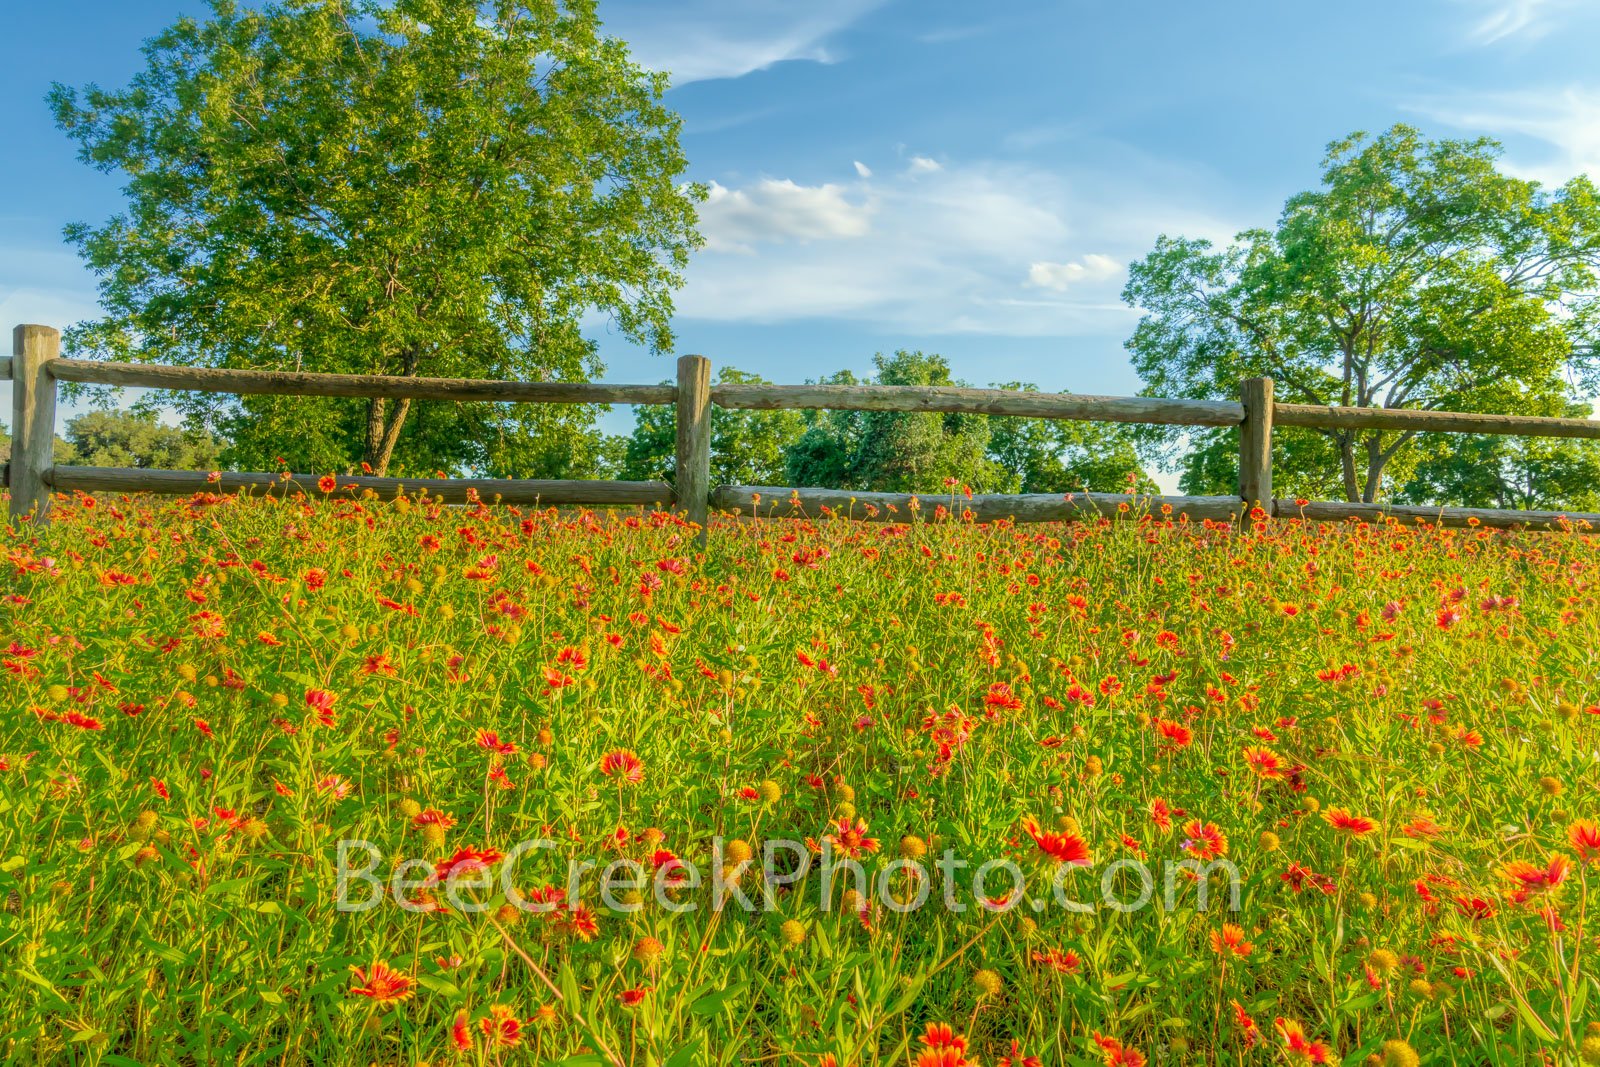 wildflowers, fence, texas hill country, field of texas wildflowers, hill country, indian blanket, fire wheel, yellow, spring, blue sky, clouds,, photo